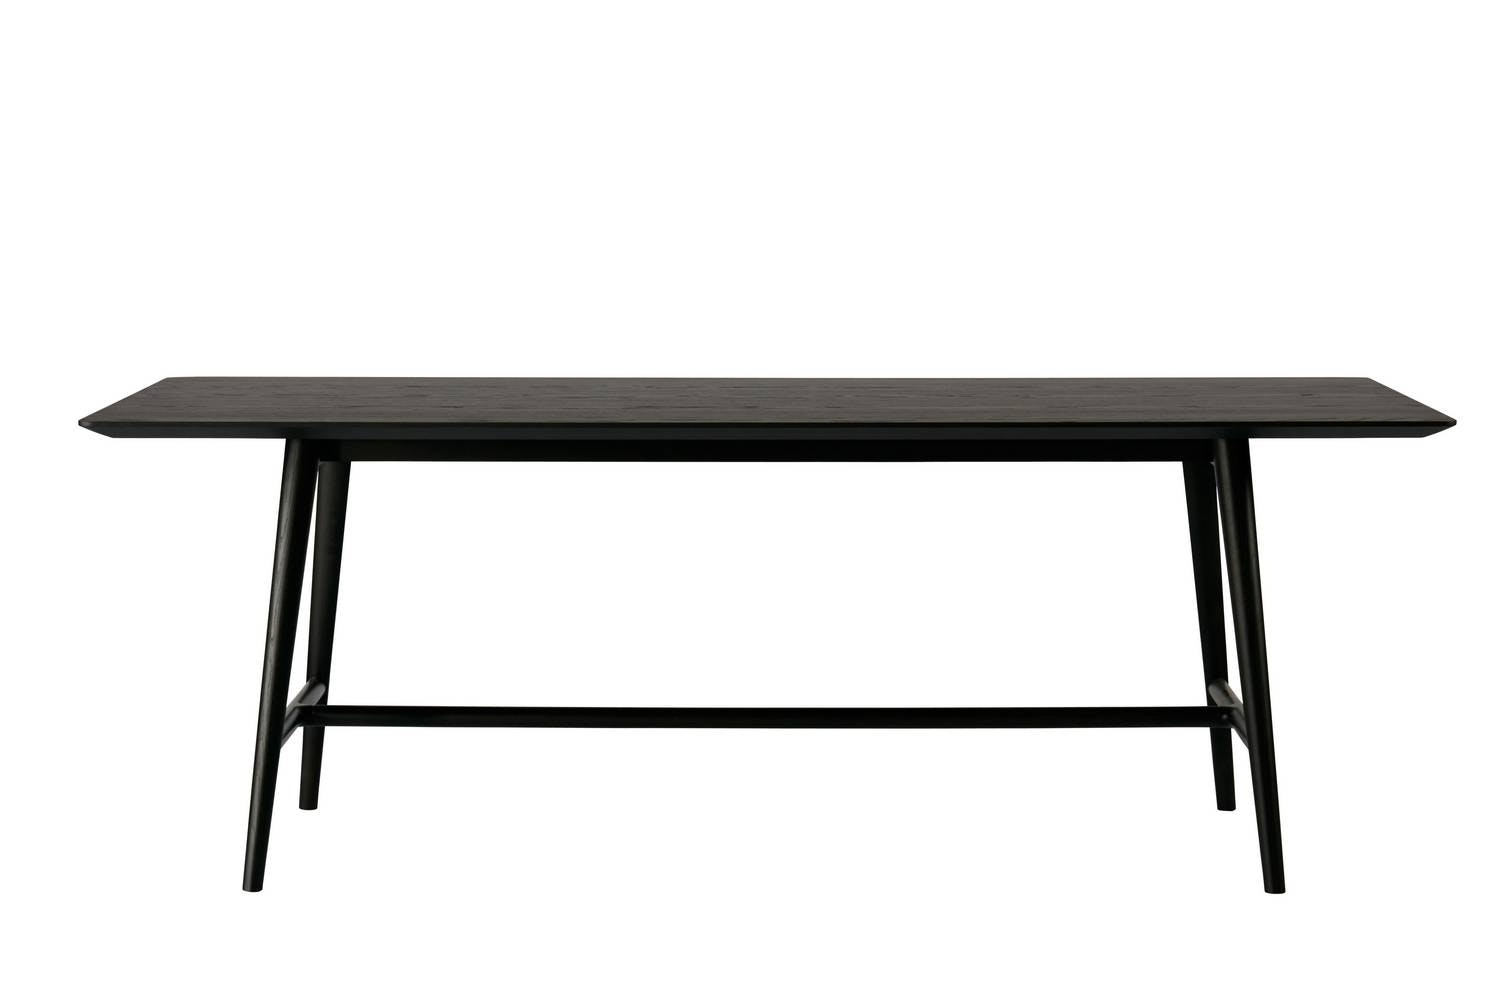 Holland Table by Metrica for SP01